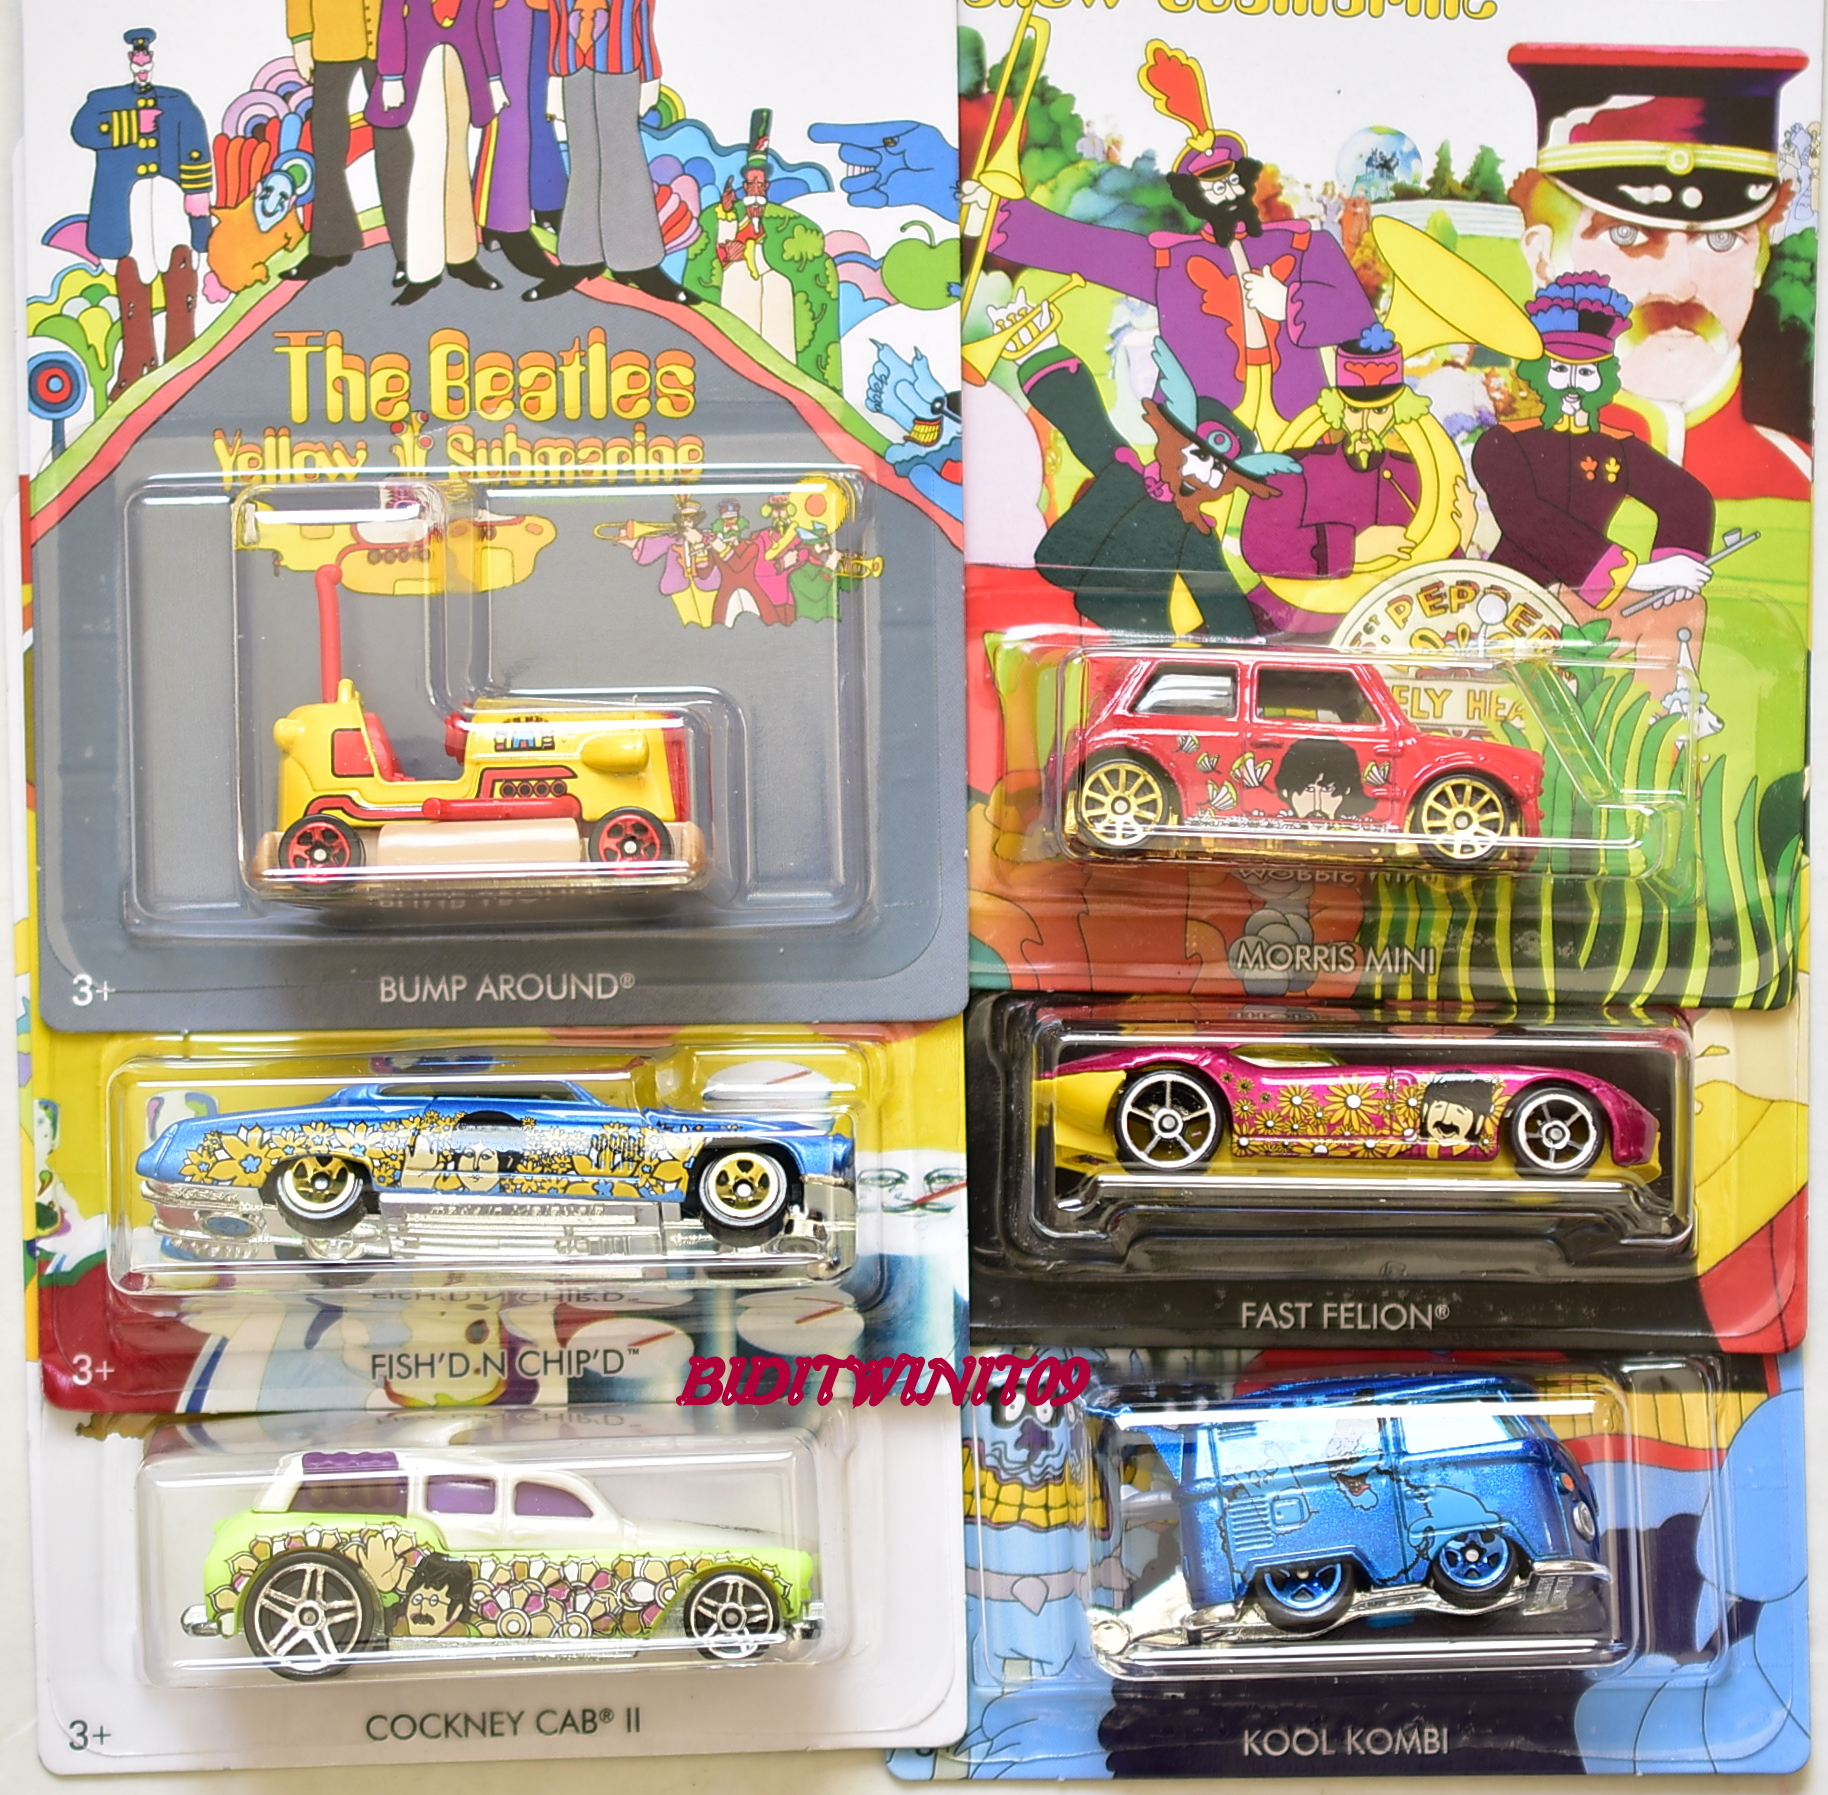 HOT WHEELS THE BEATLES 2016 YELLOW SUBMARINE COMPLETE SET OF 6 MORRIS MINI KOMBI